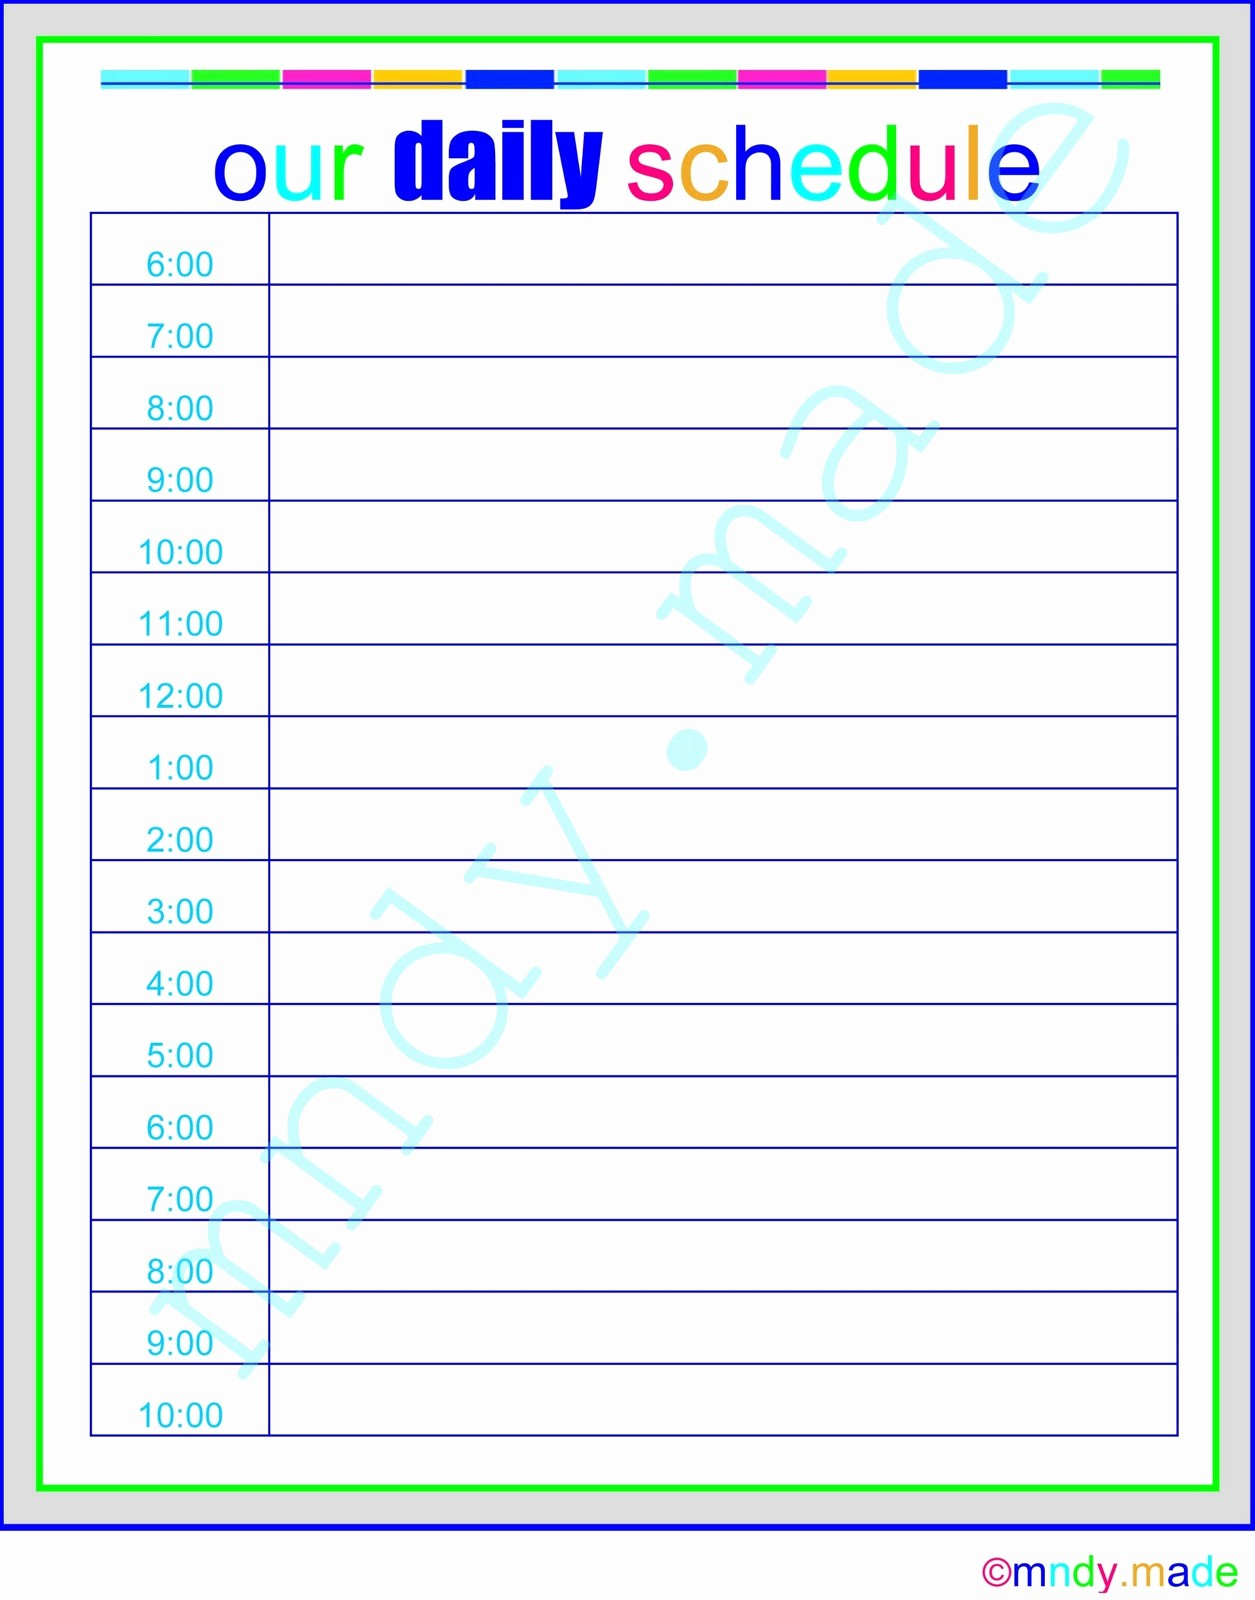 Printable Daily Calendar by Hour Awesome Printable Daily Calendar by Hour